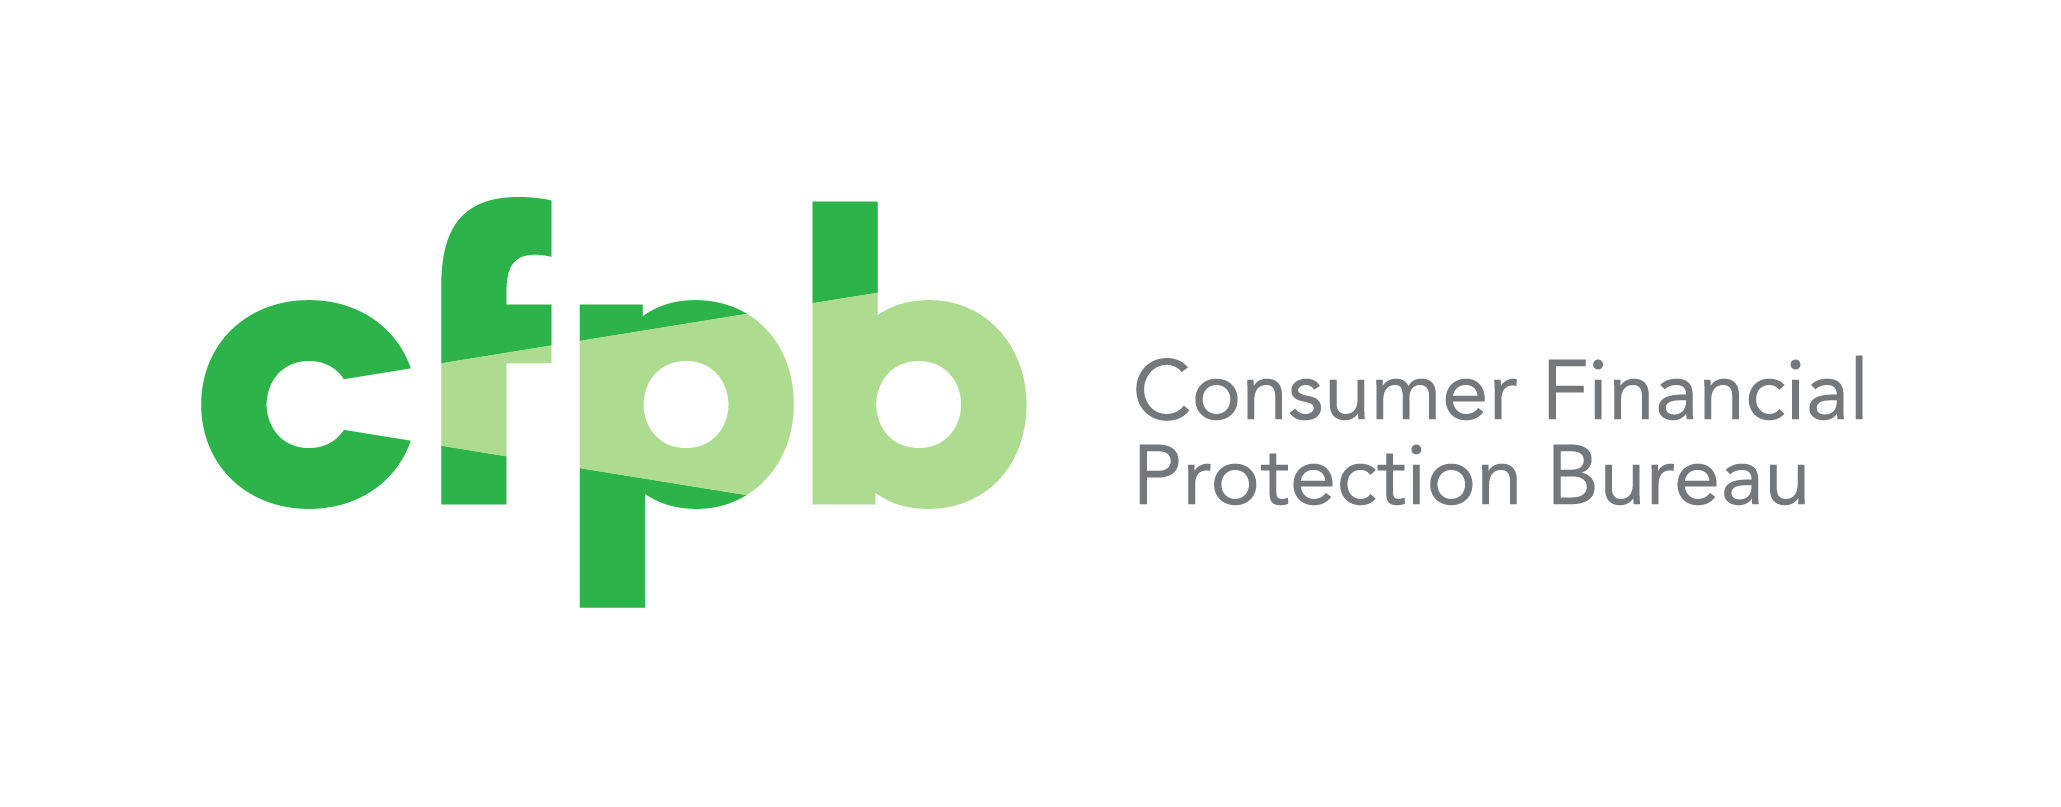 The Consumer Financial Protection Bureau (CFPB) has finalized new measures to ensure that homeowners and struggling borrowers are treated fairly by mortgage servicers